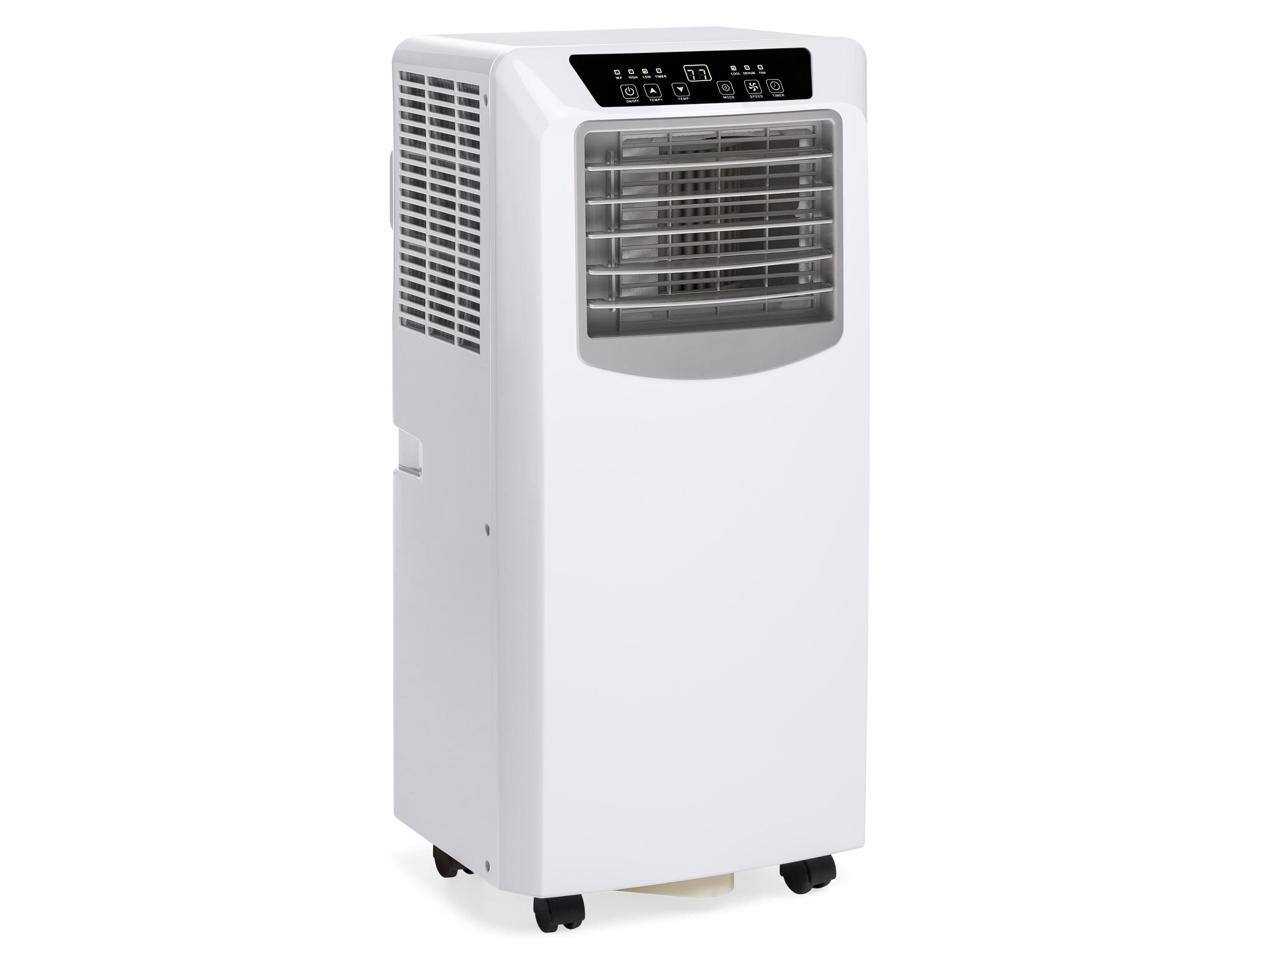 Best Choice Products 3-in-1 10,000 BTU Air Conditioner Cooling Fan Dehumidifier w/ Remote Control